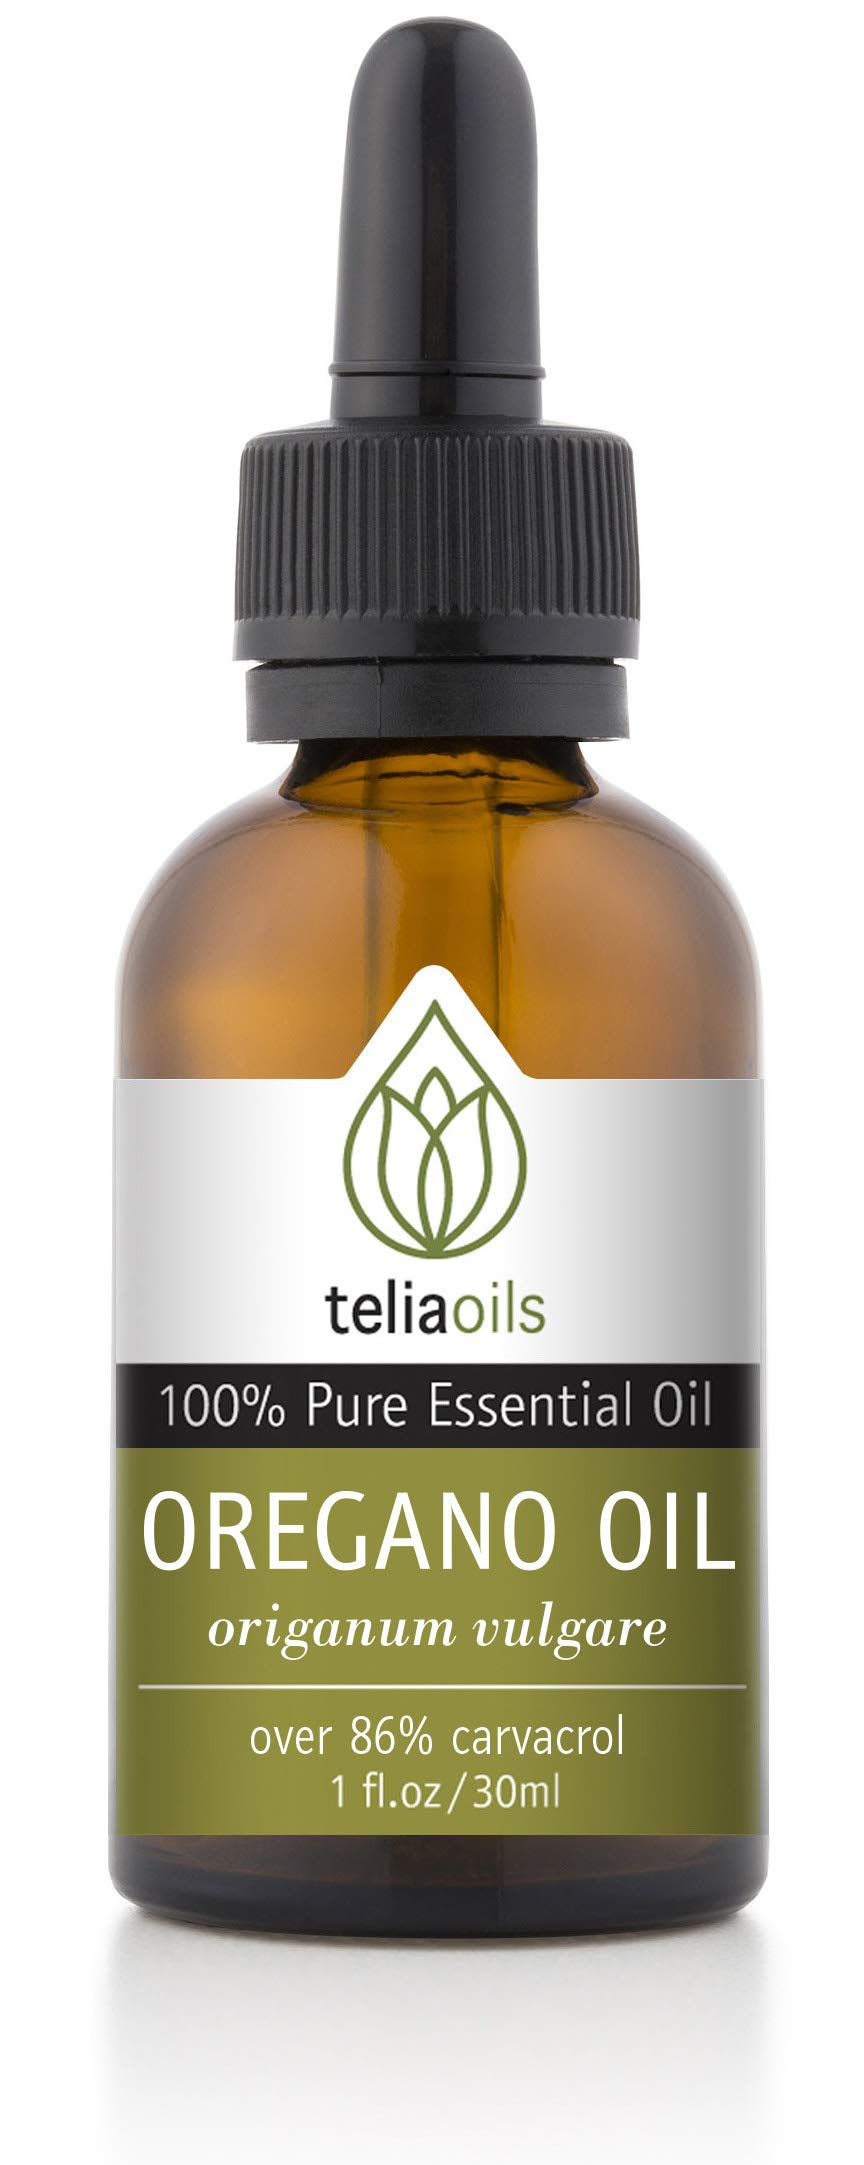 Teliaoils 100% Organic Oil Of Oregano - Super Strength over 86% Carvacrol - Pharmaceutical Grade Wild Oregano Oil from the mountains of Greece - Undiluted, Certified, Pure Oregano Essential Oil - 1 oz